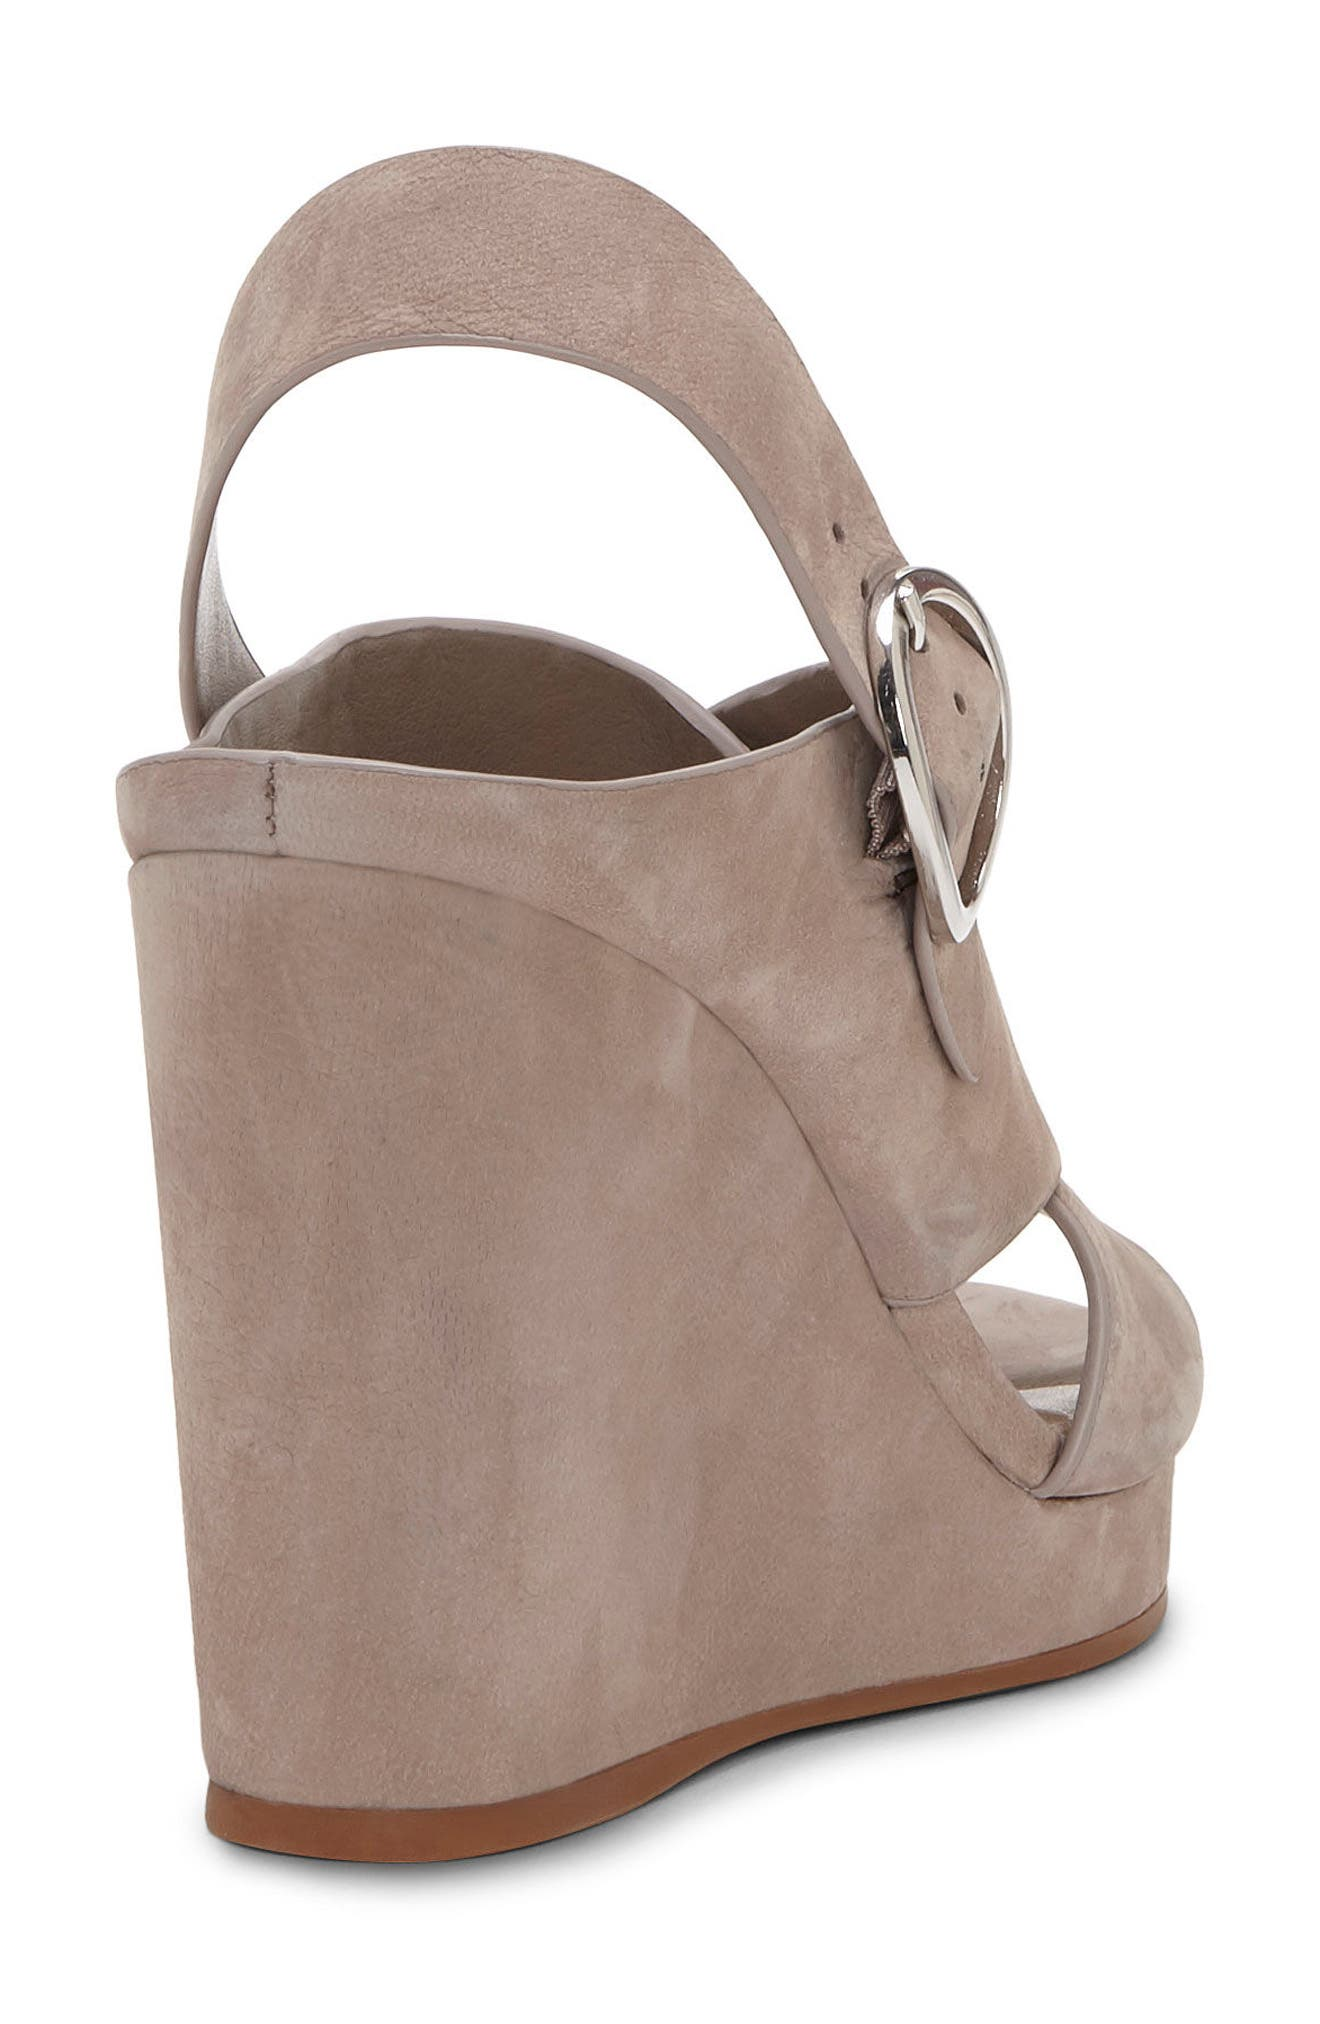 Iteena Wedge Sandal,                             Alternate thumbnail 3, color,                             Hippo Grey Leather